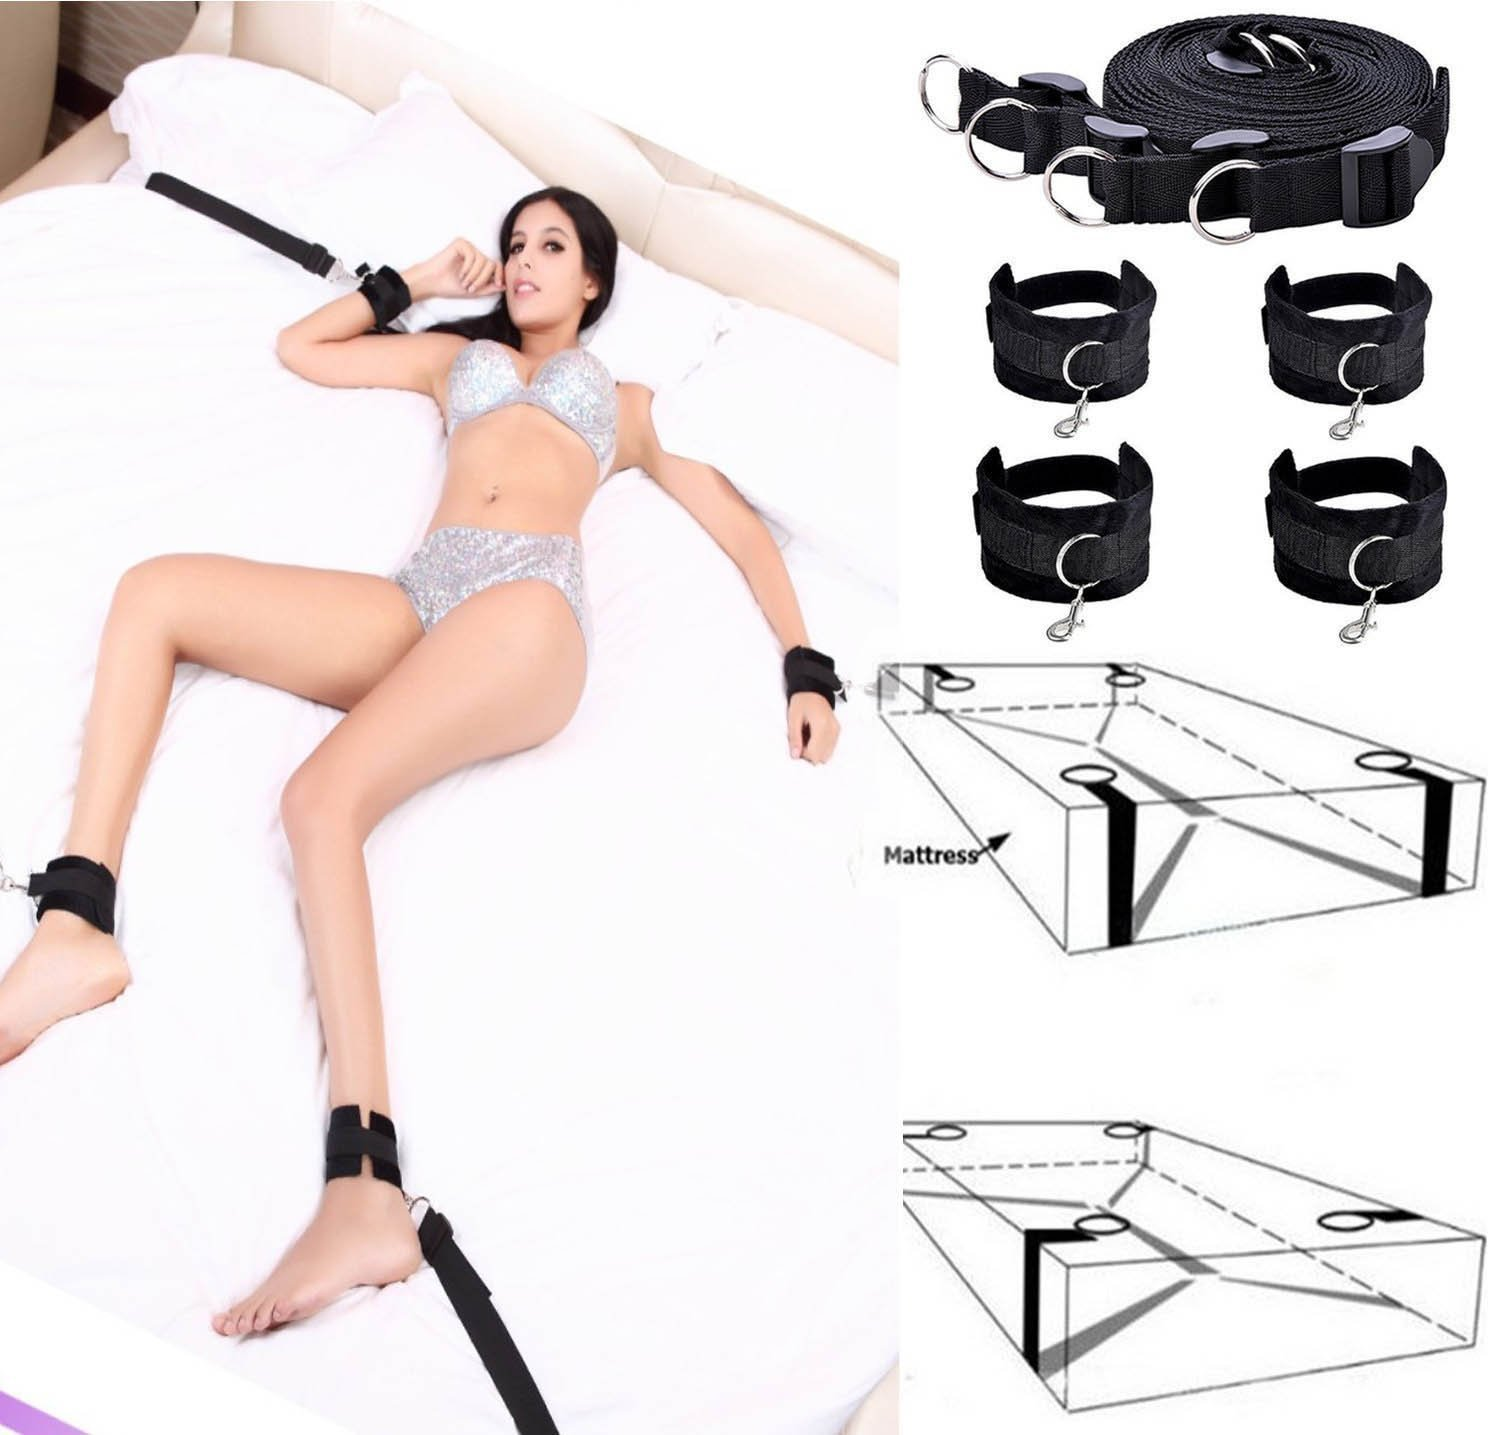 FEHFJAD-2LKM Black Nylon Ropes Wrist and Ankle Protector for Couples